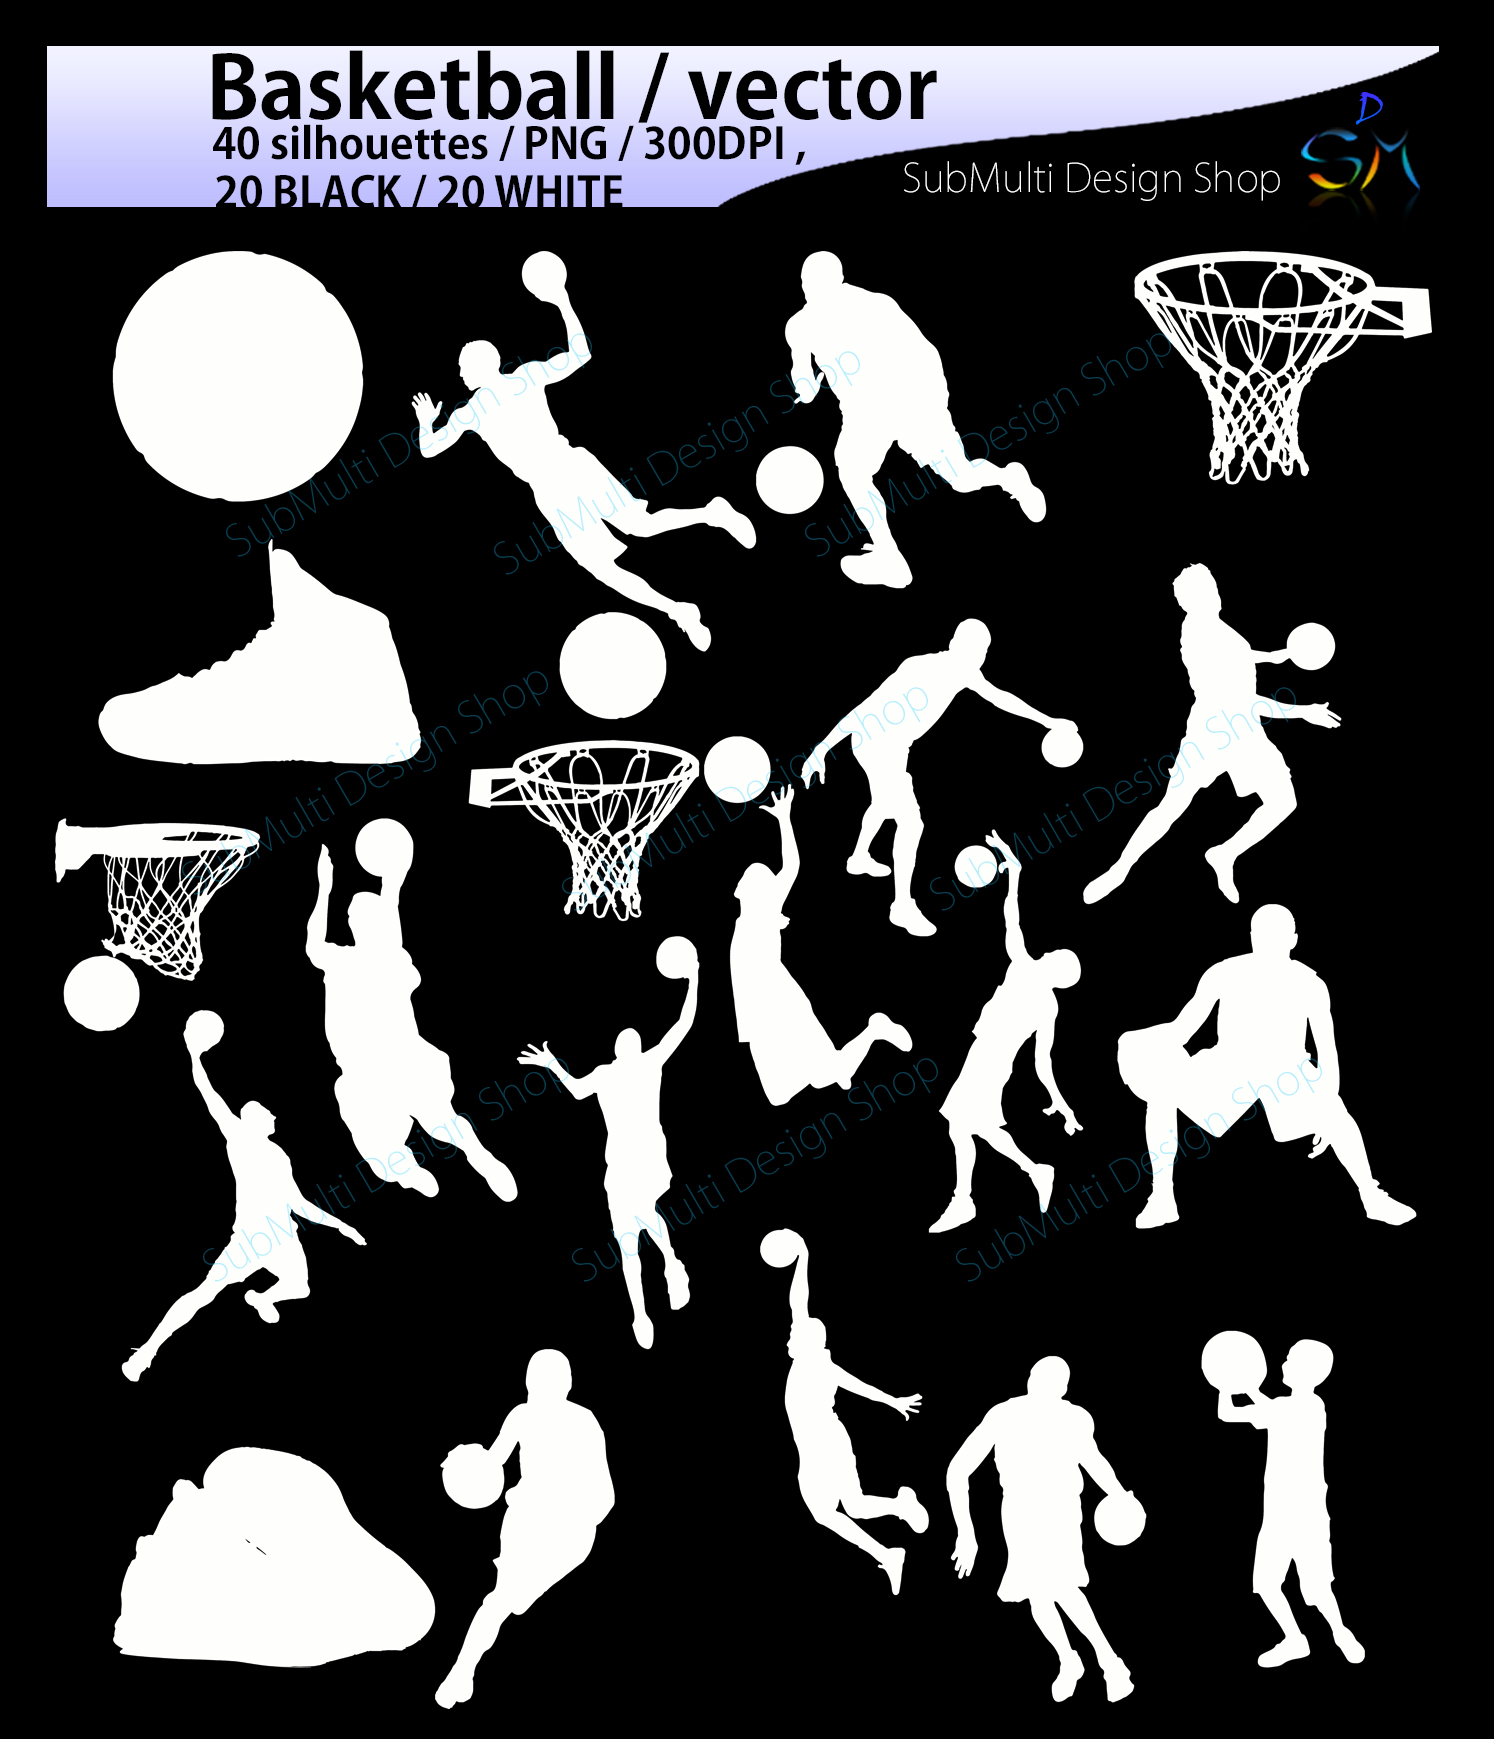 basketball svg / basketball silhouette / basketball players silhouette / HQ / baseketball SVG file / vector basketball / Eps / Dxf / Png example image 3